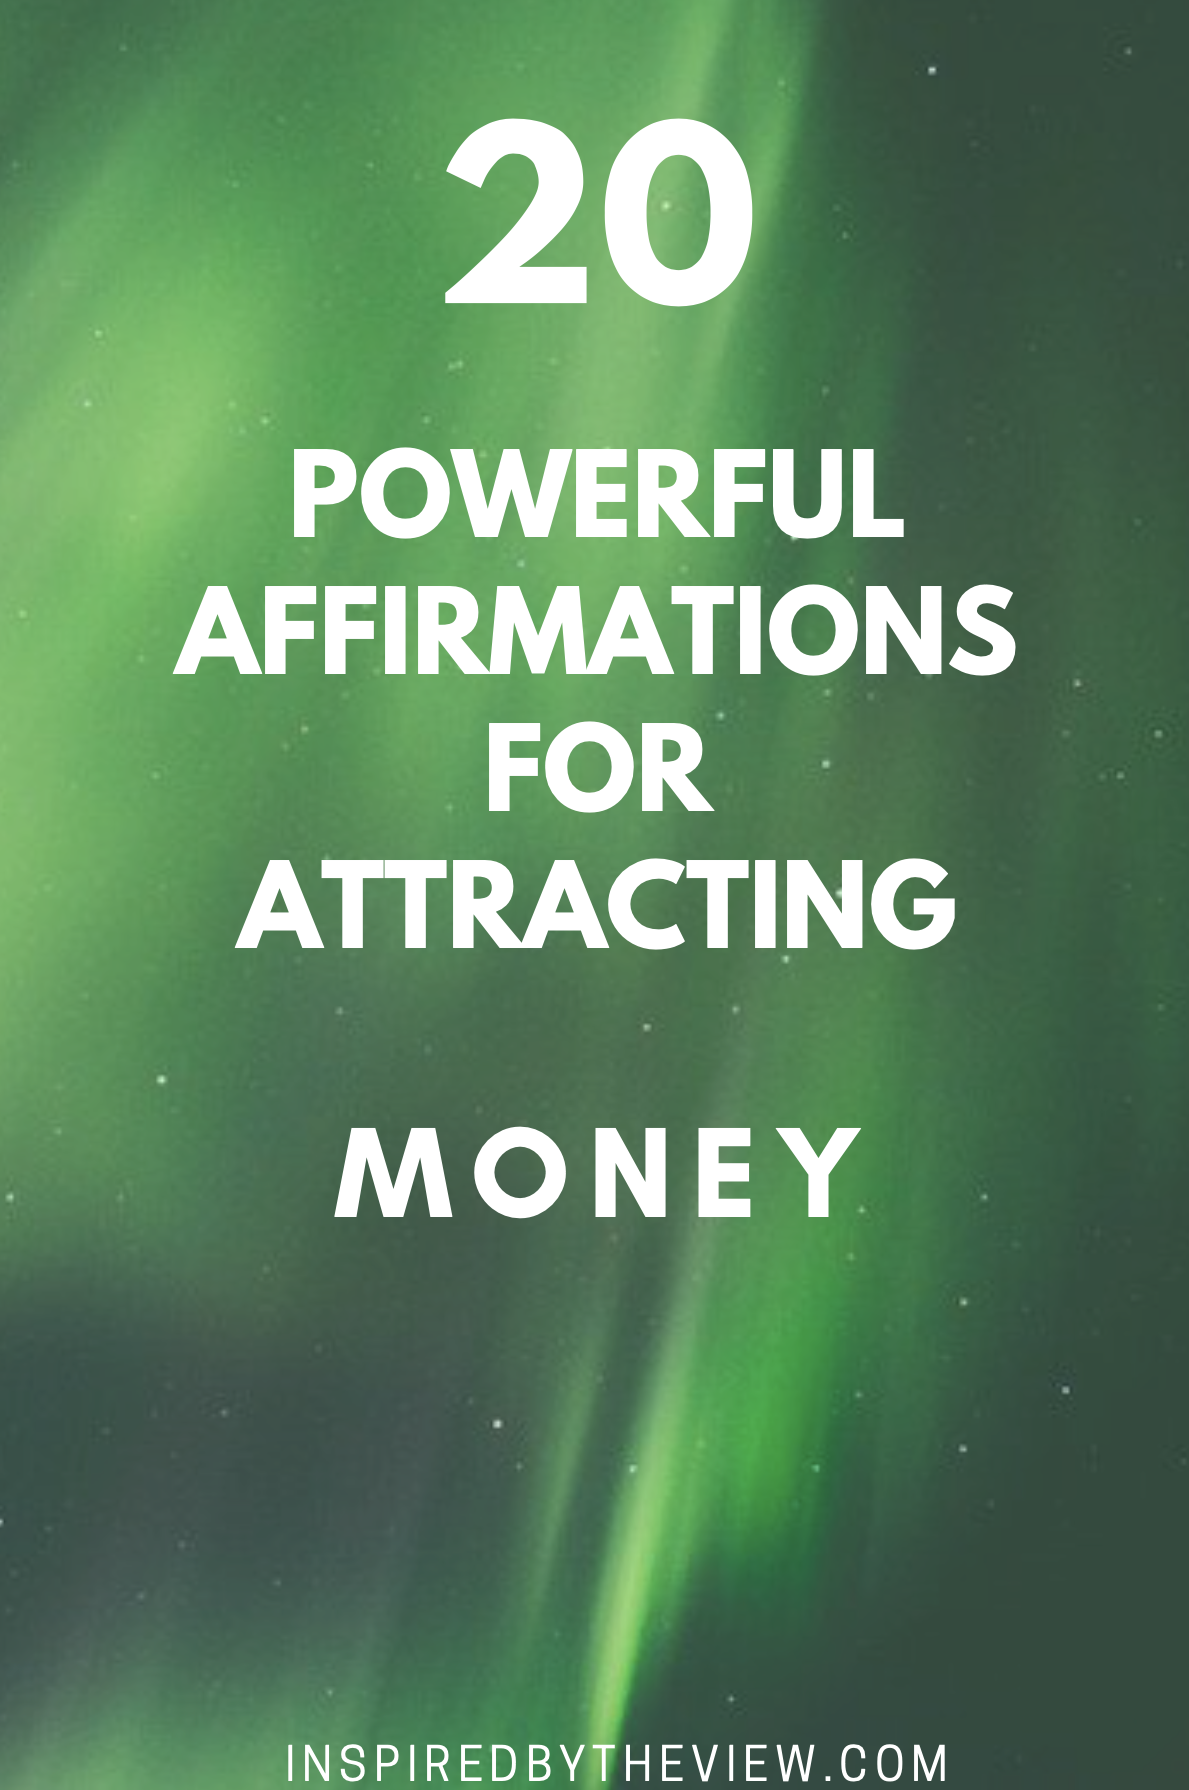 20 Powerful Affirmations For Attracting Money